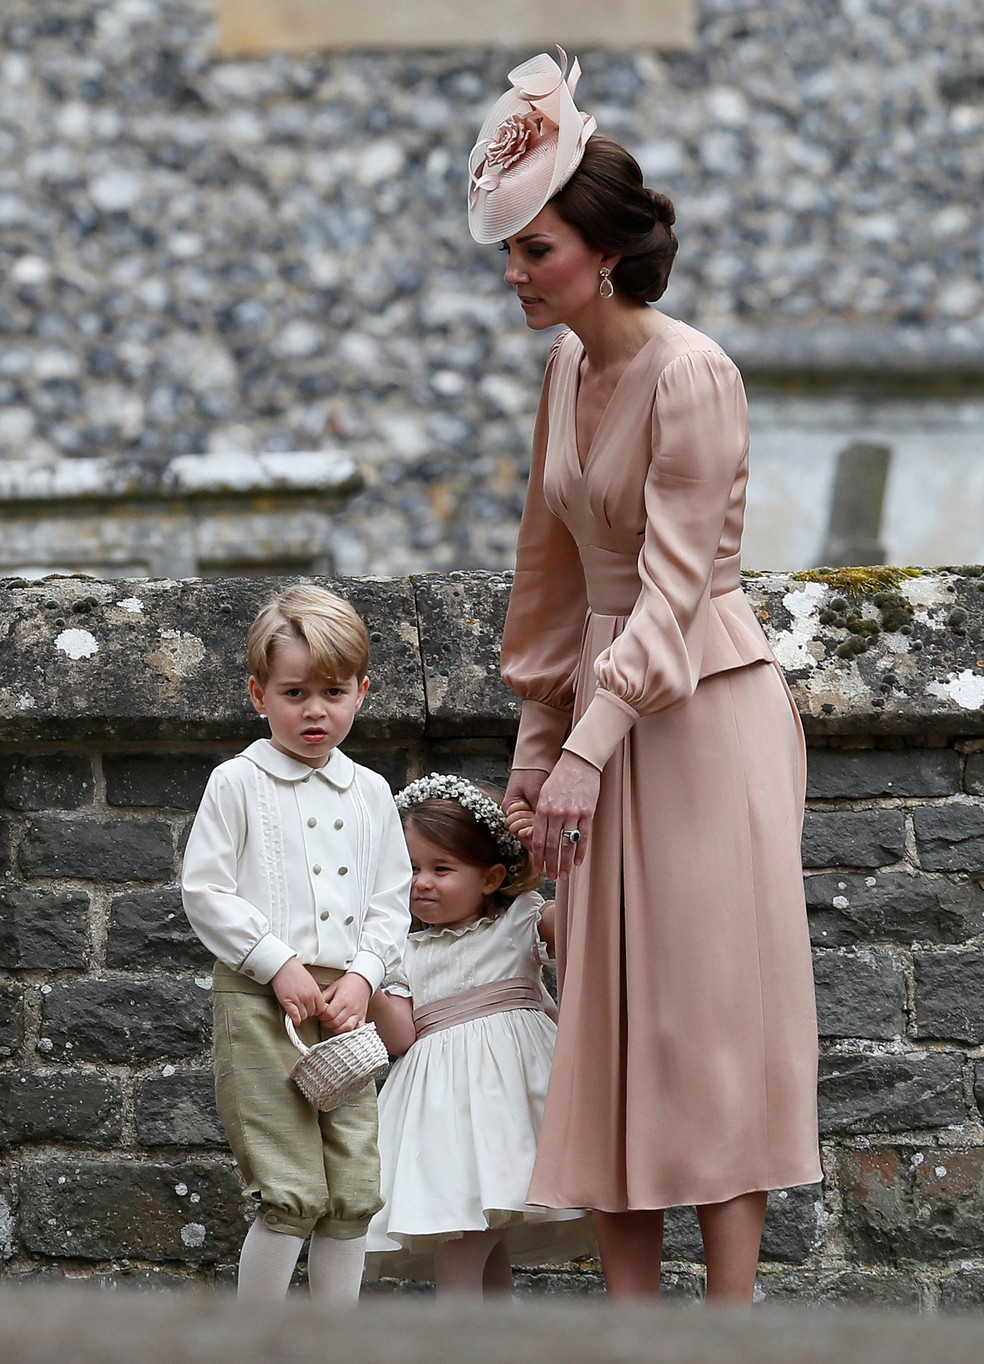 Kate Middleton, duquesa de Cambridge, com Geroge e Charlotte, no casamento de sua irmã mais nova Pippa Middleton (Foto: Kirsty Wigglesworth/Reuters)